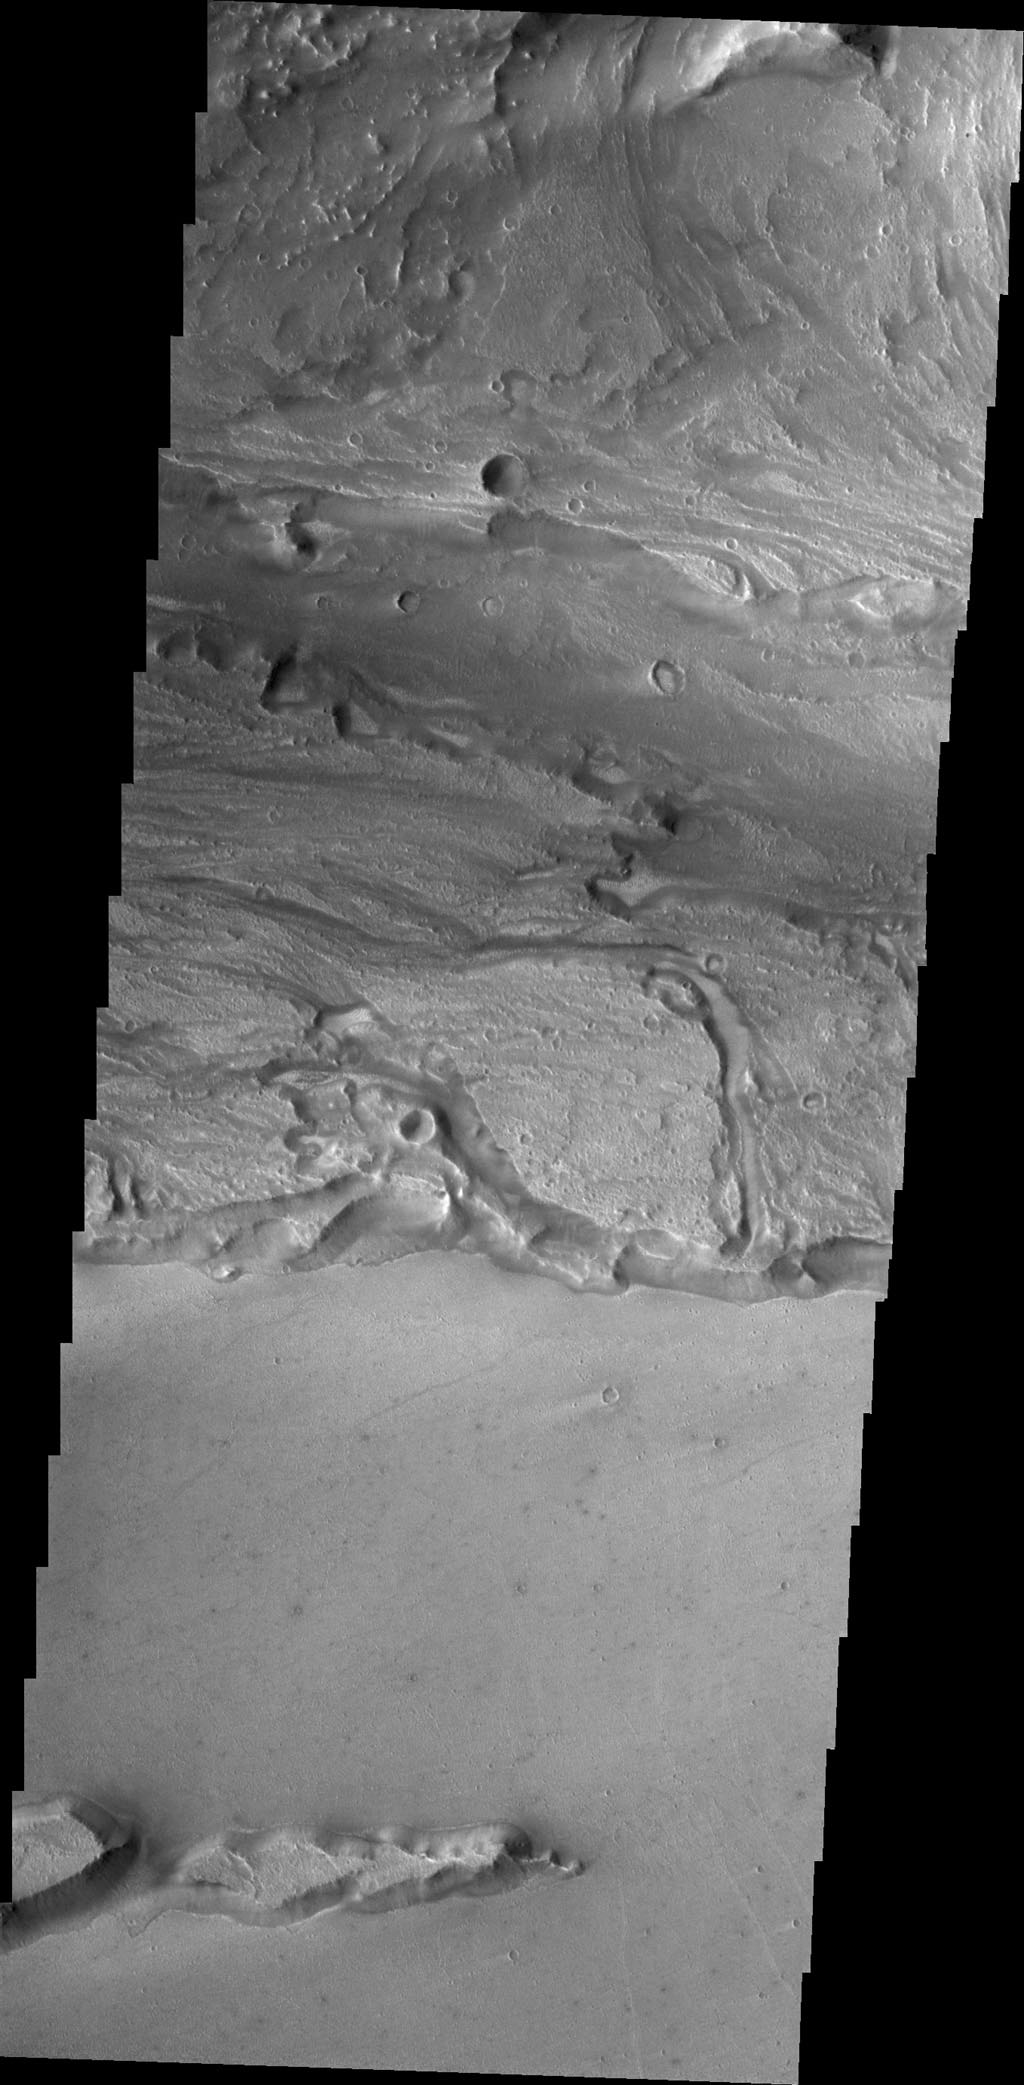 Today's image from NASA's 2001 Mars Odyssey spacecraftshows a small portion of Kasei Valles, one of the largest channel systems on Mars.